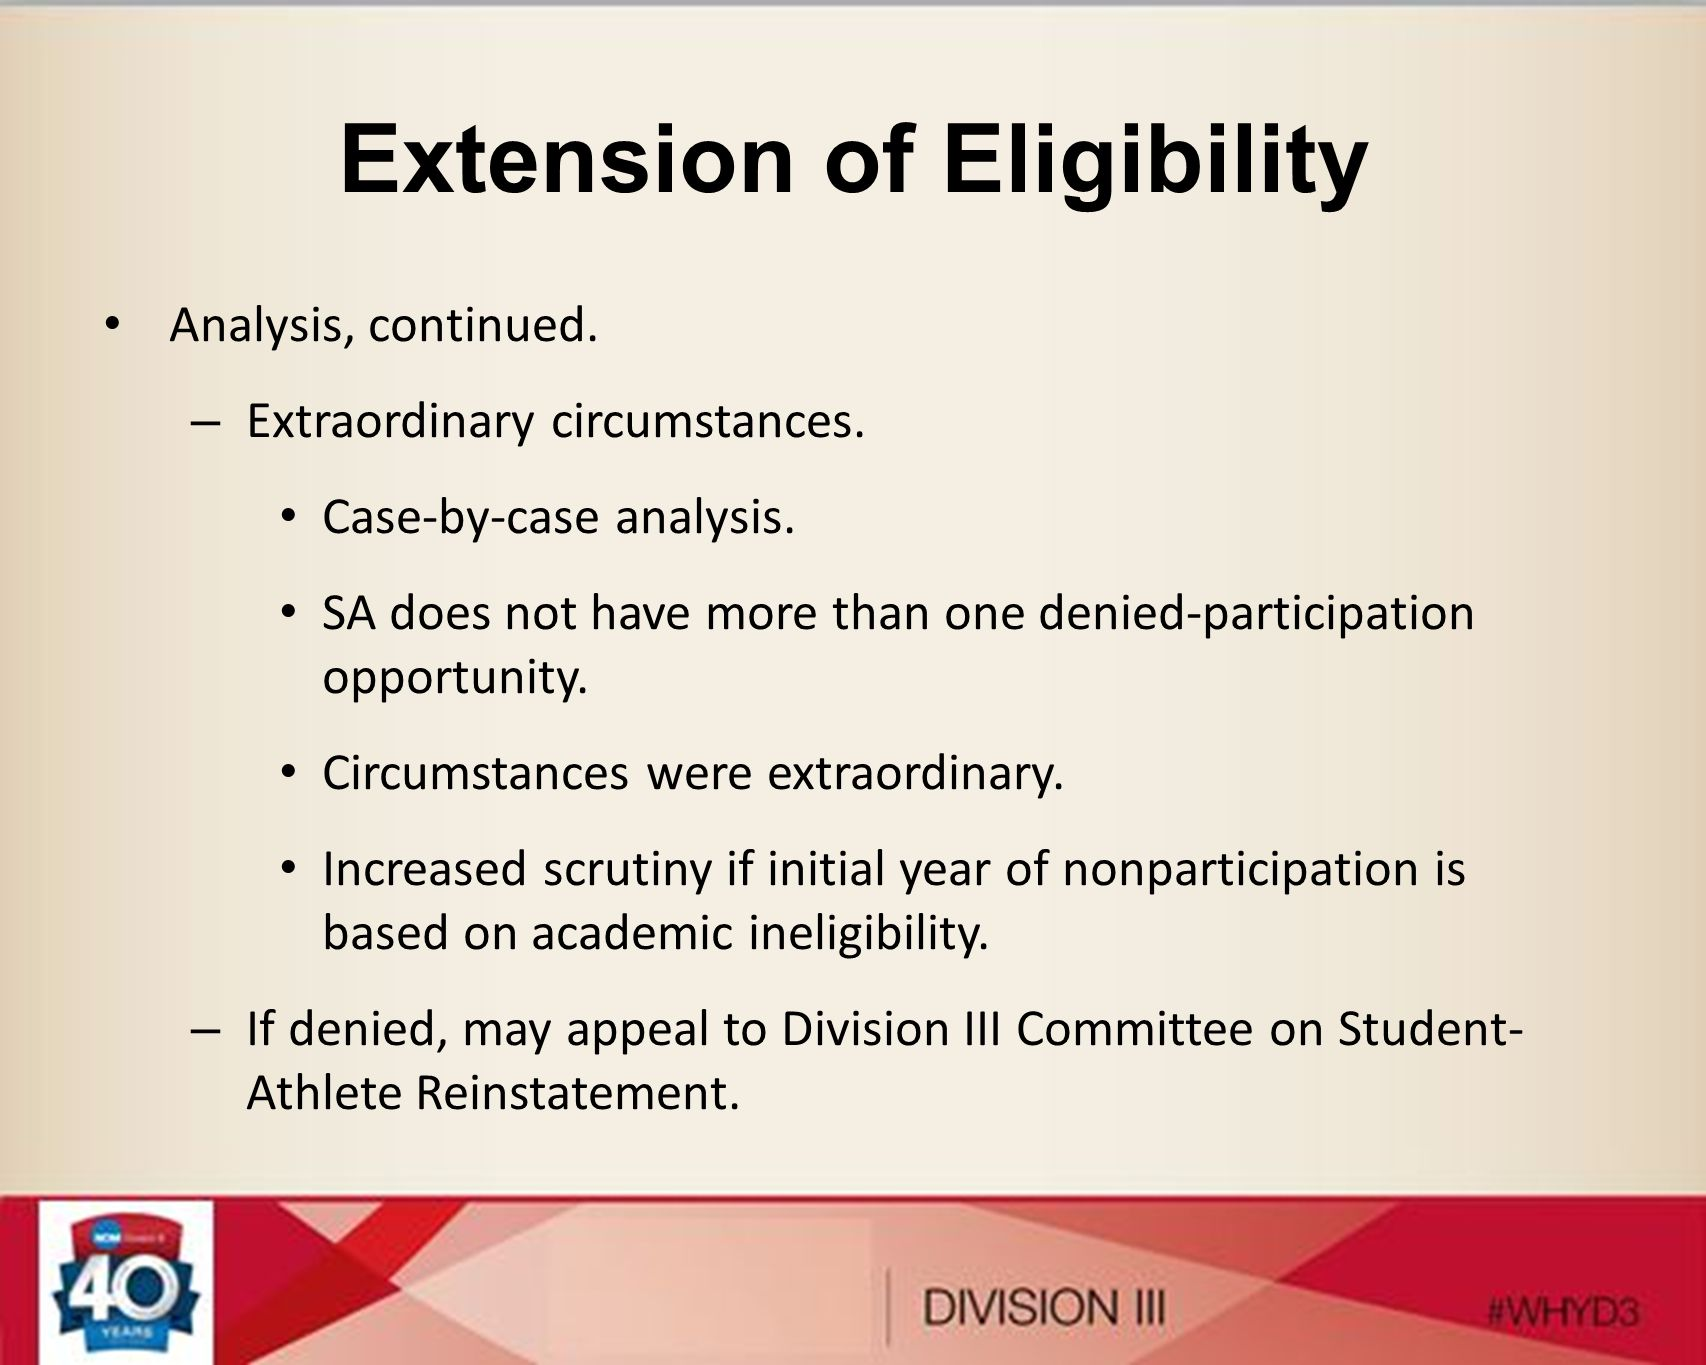 Extension of Eligibility